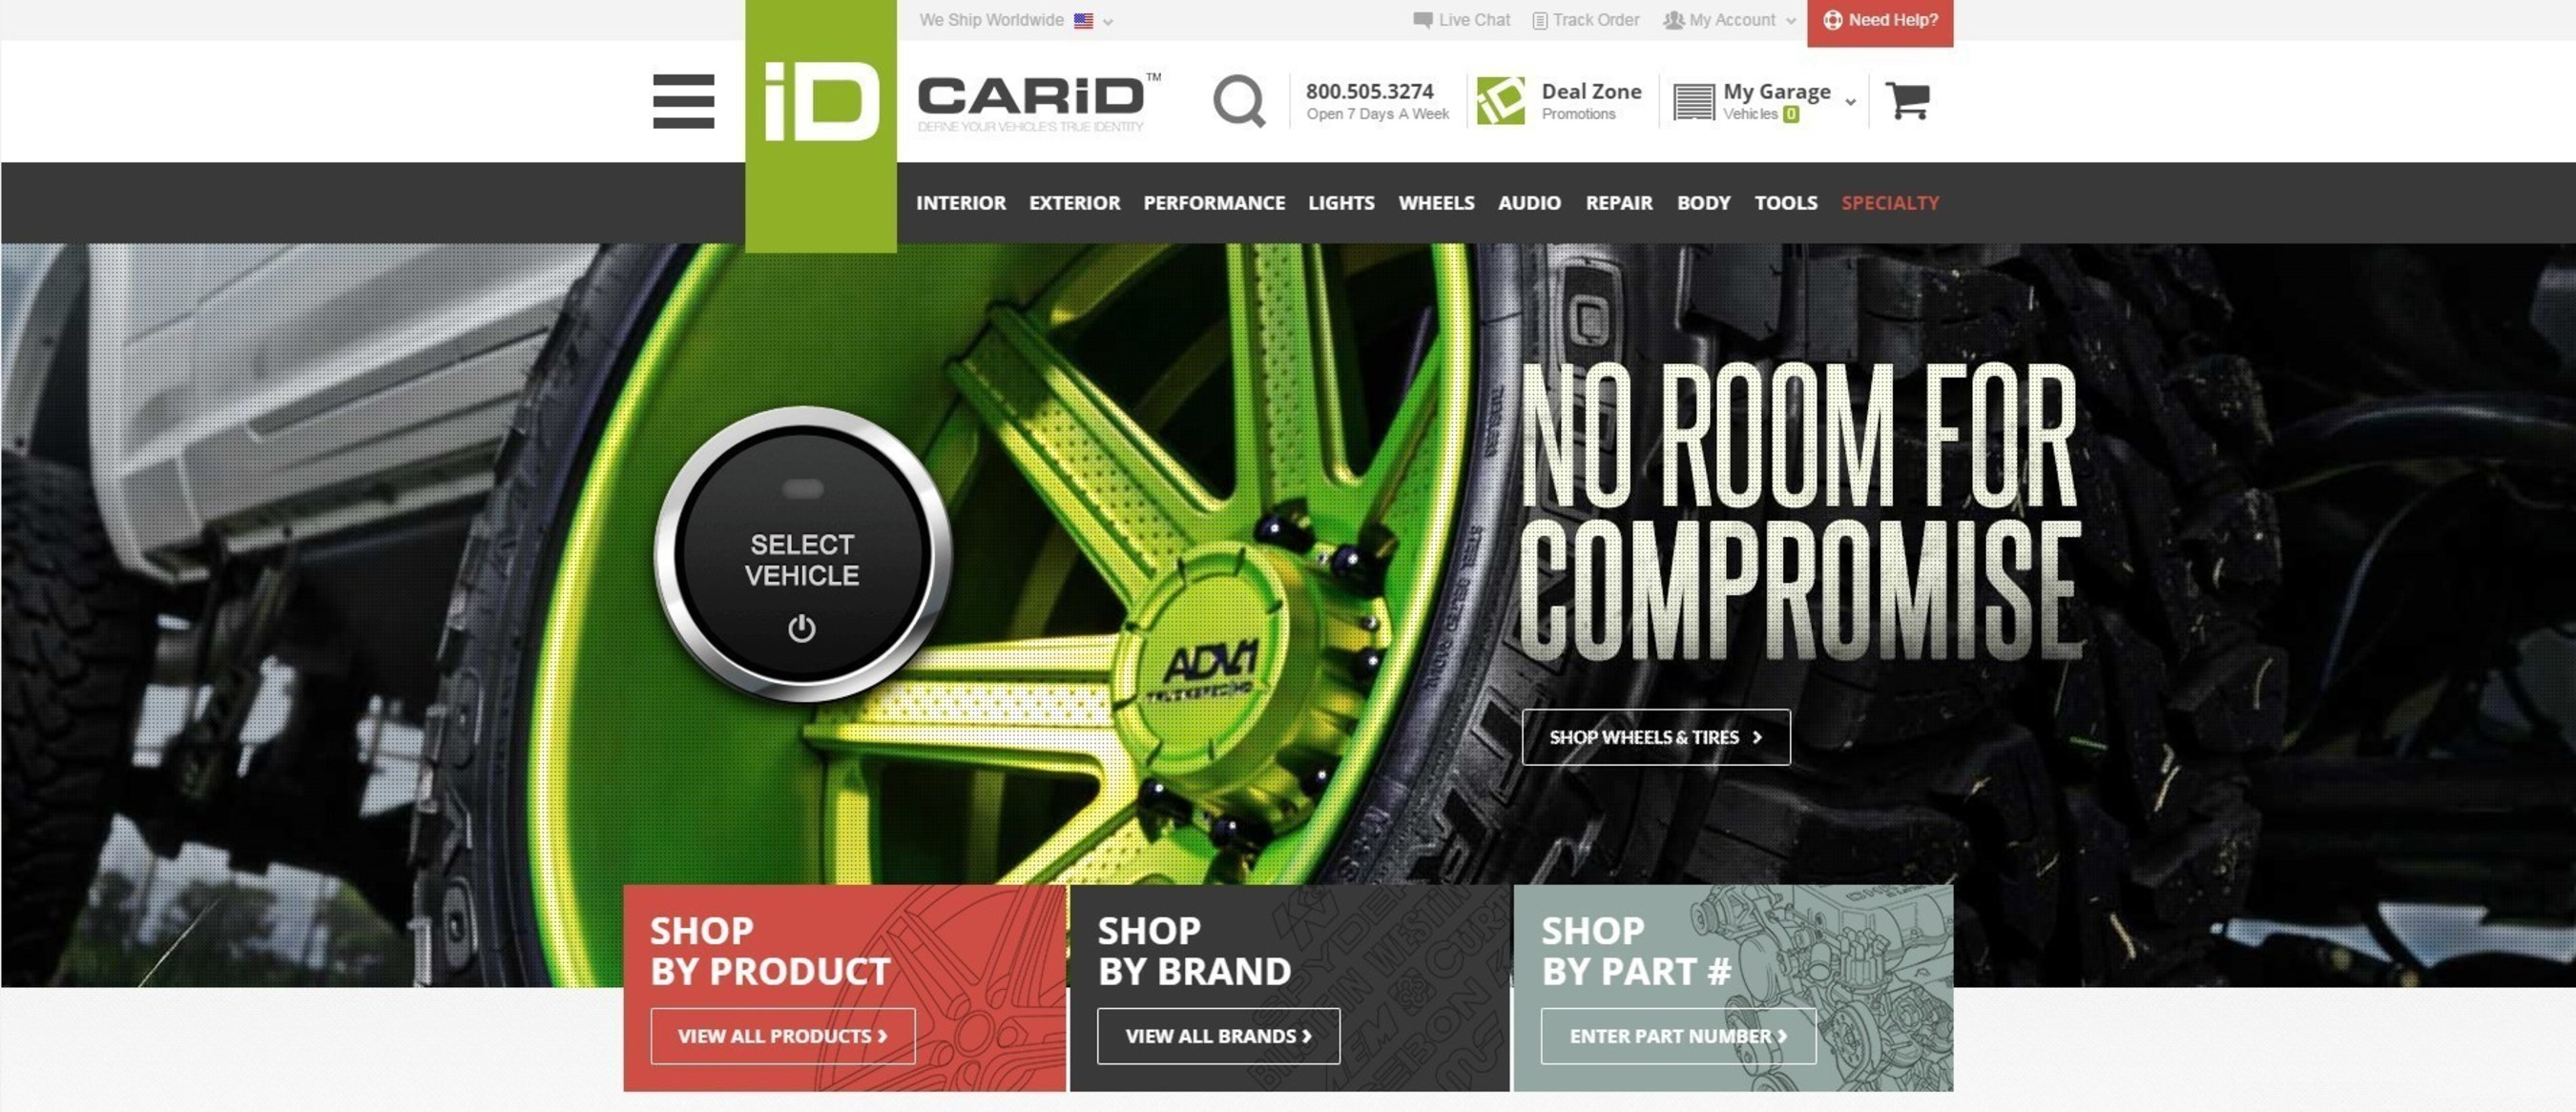 CARiD.com Announces the Launch of Their Redesigned Website & Shopping Experience